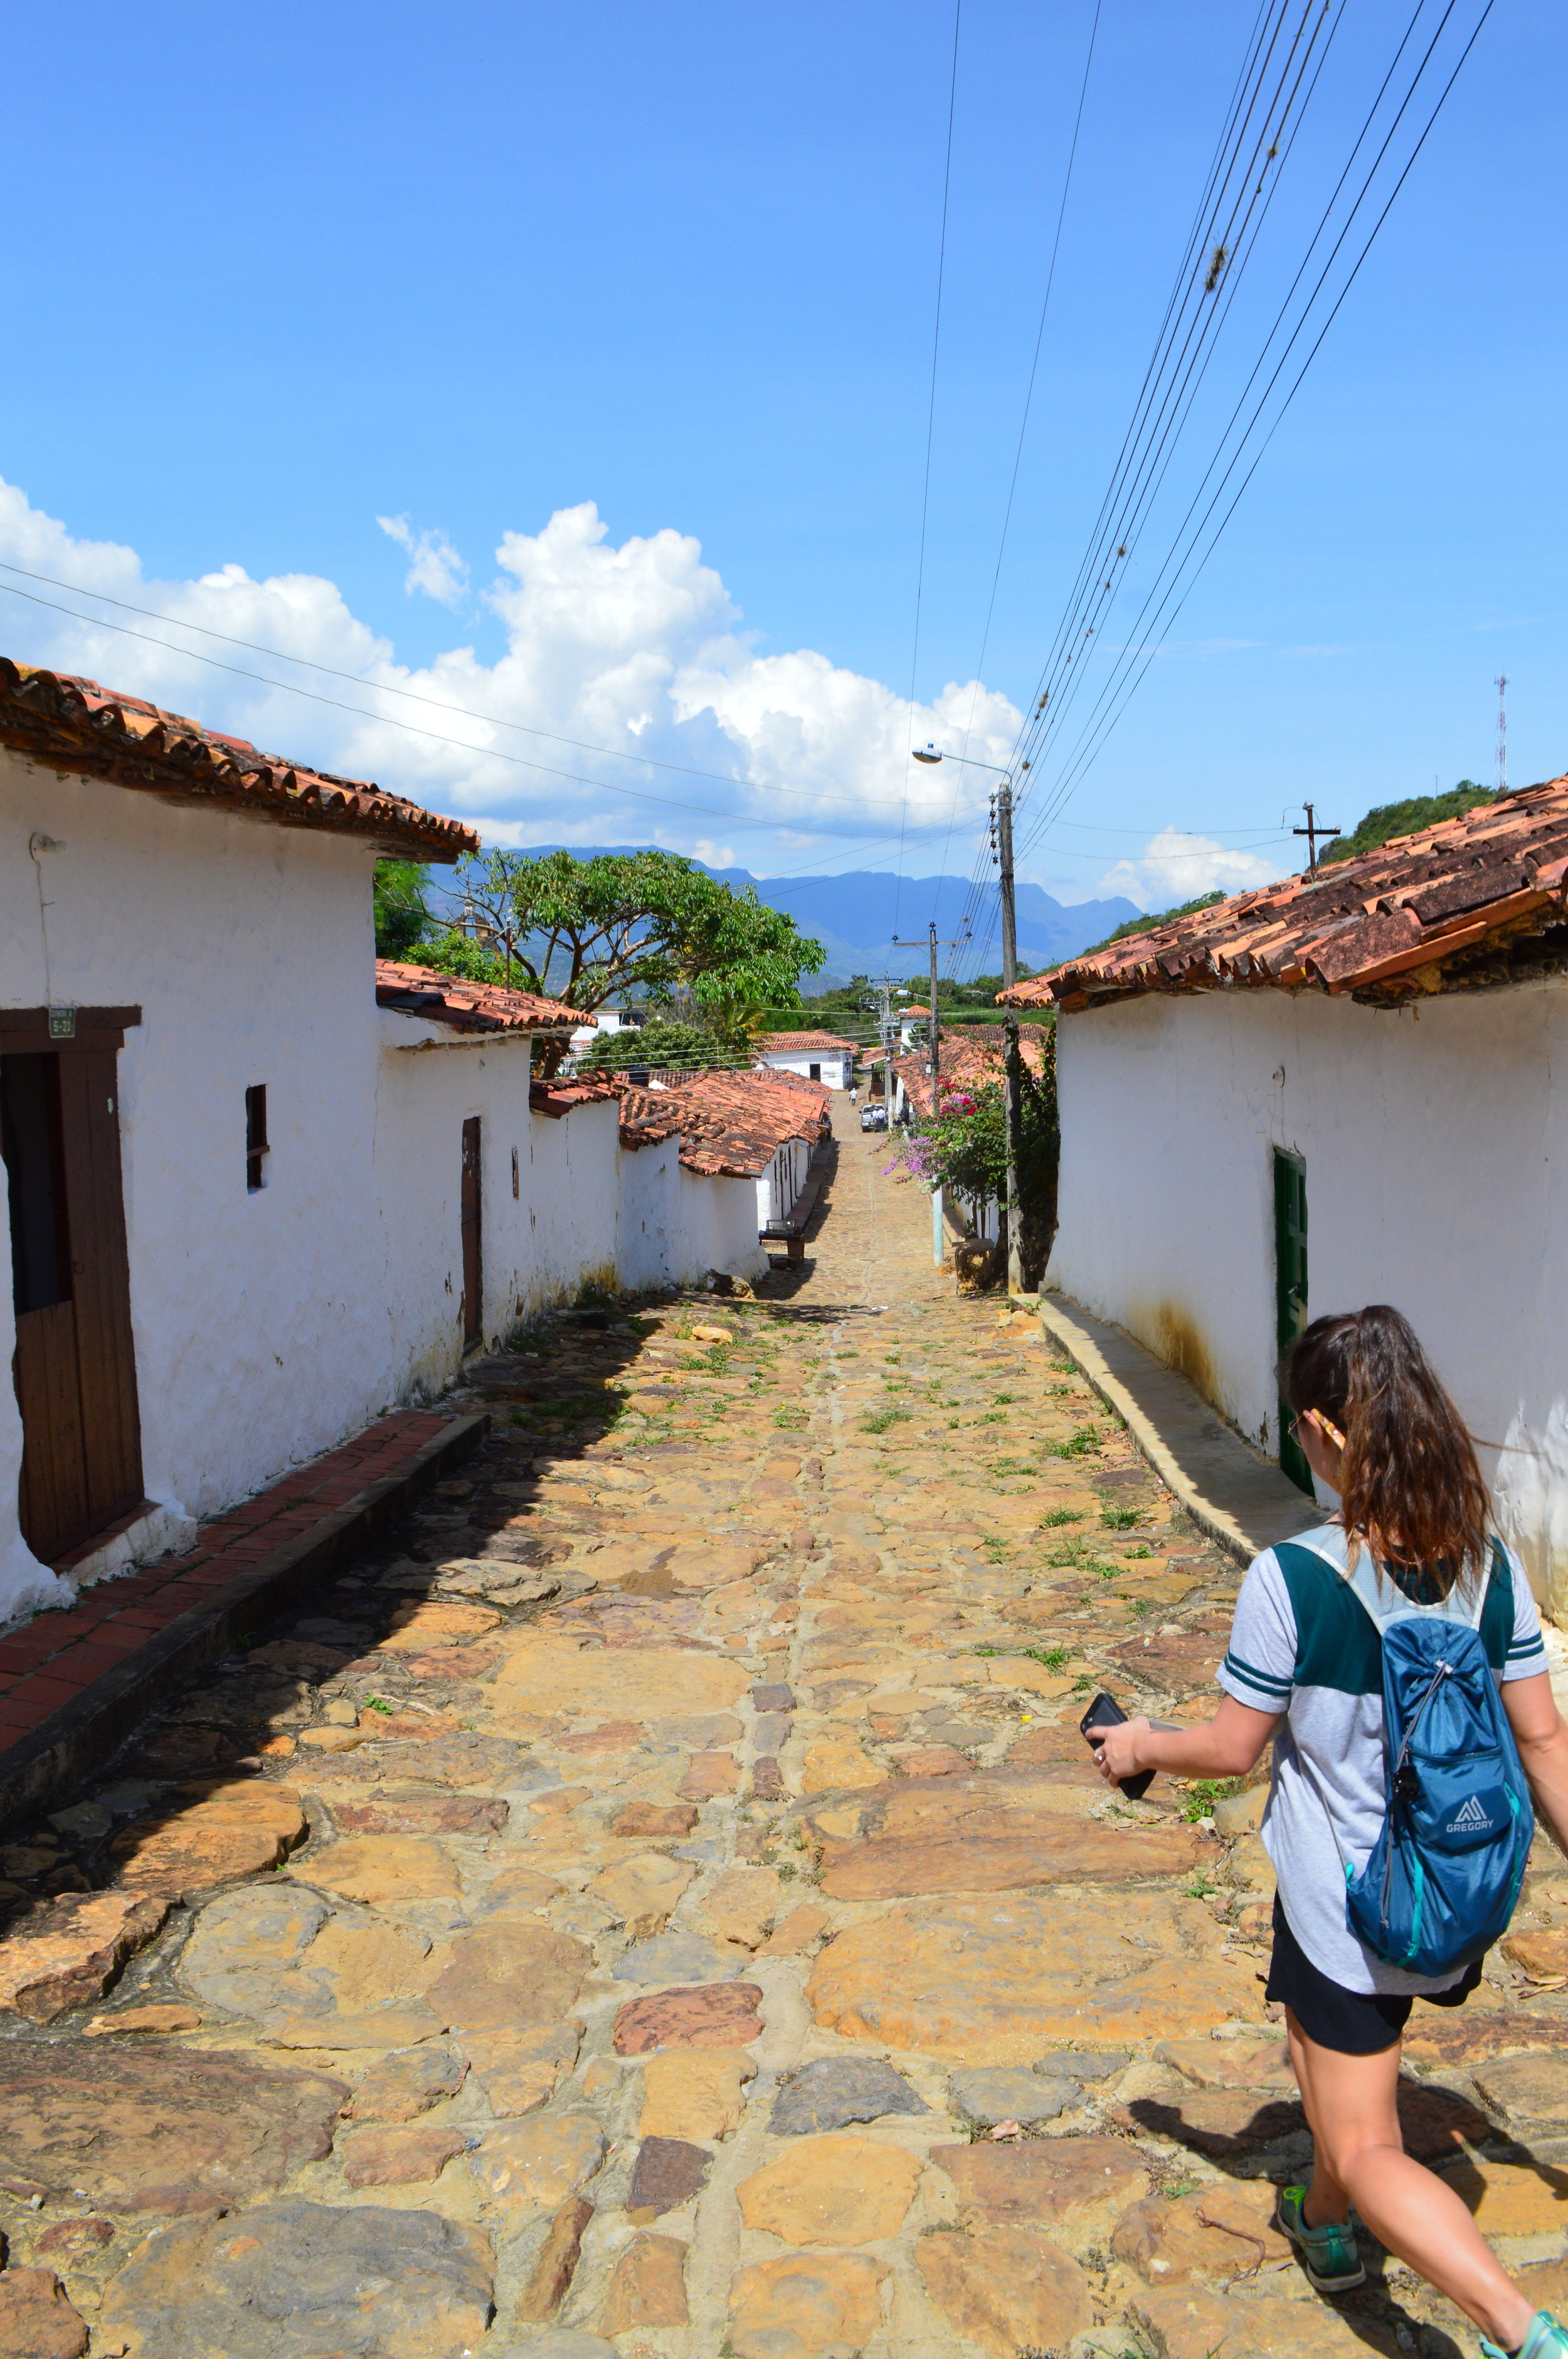 Walking into the town of Guane